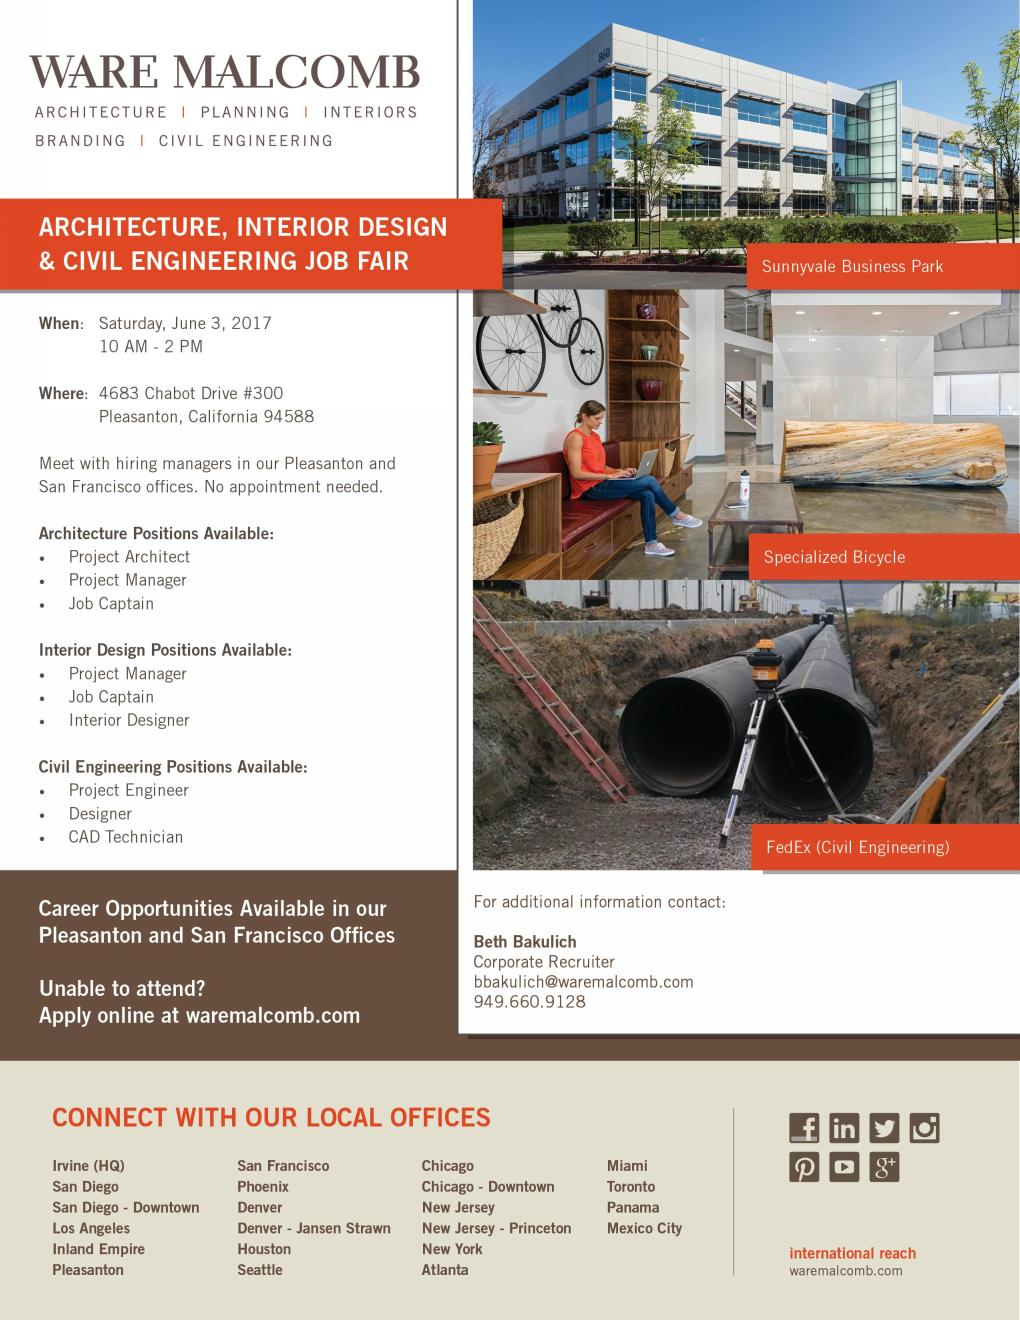 Ware Malcomb Architecture Interior Design Civil Engineering Job Fair